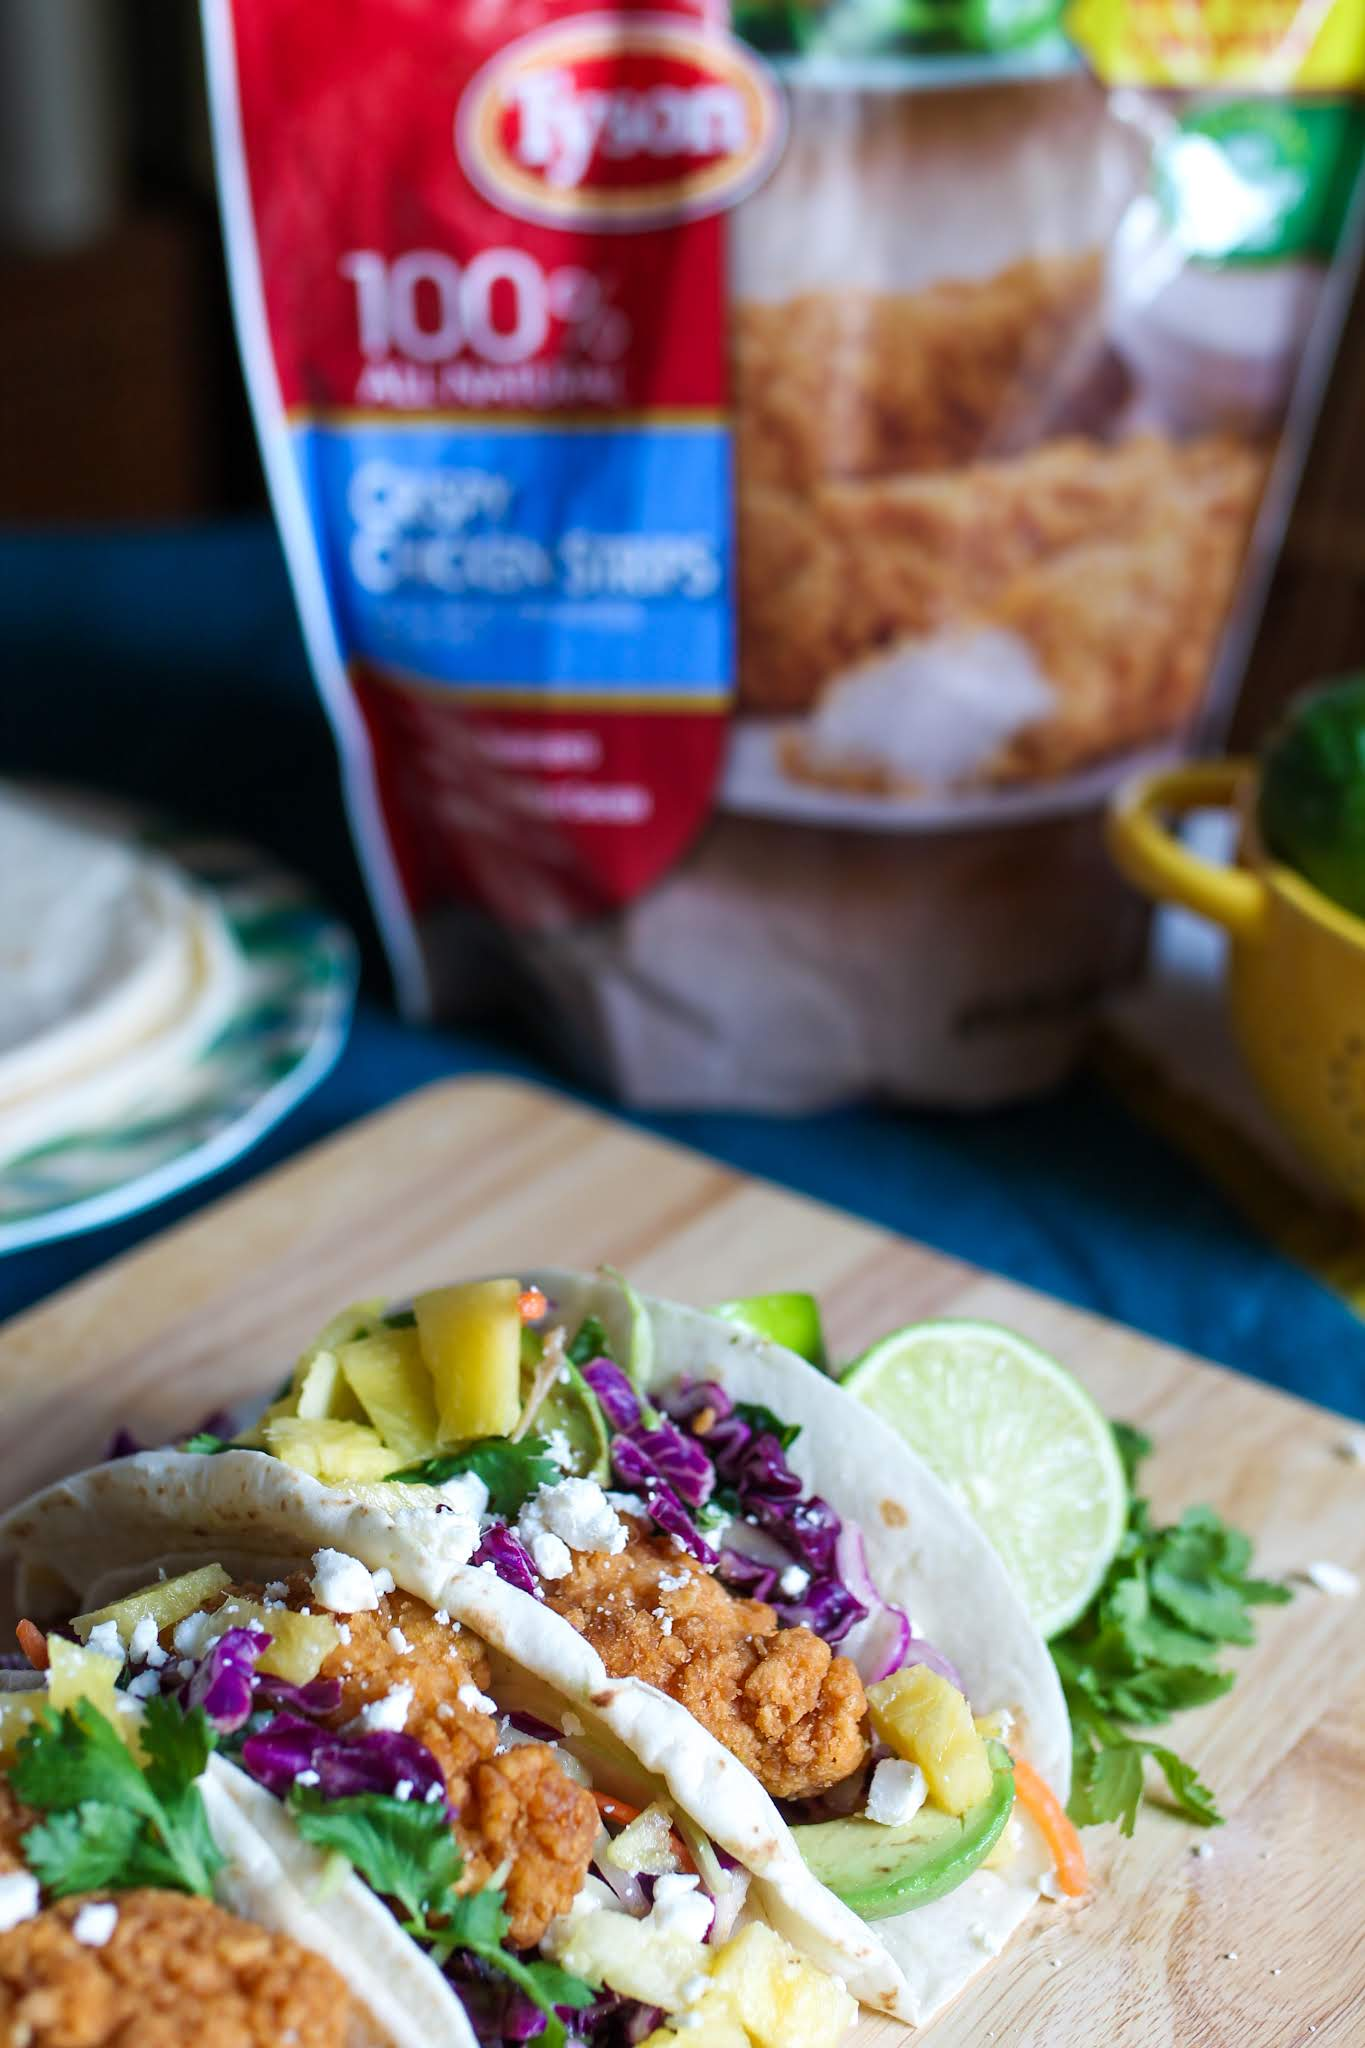 tacos // taco ideas // chicken tacos // fried chicken tacos // Tyson tenders ideas // chicken tenders recipes // what to make with chicken tenders // chicken tenders // chicken tacos recipes // easy meals // kid friendly meals // week night meal ideas // quick and easy meal ideas // easy meal ideas